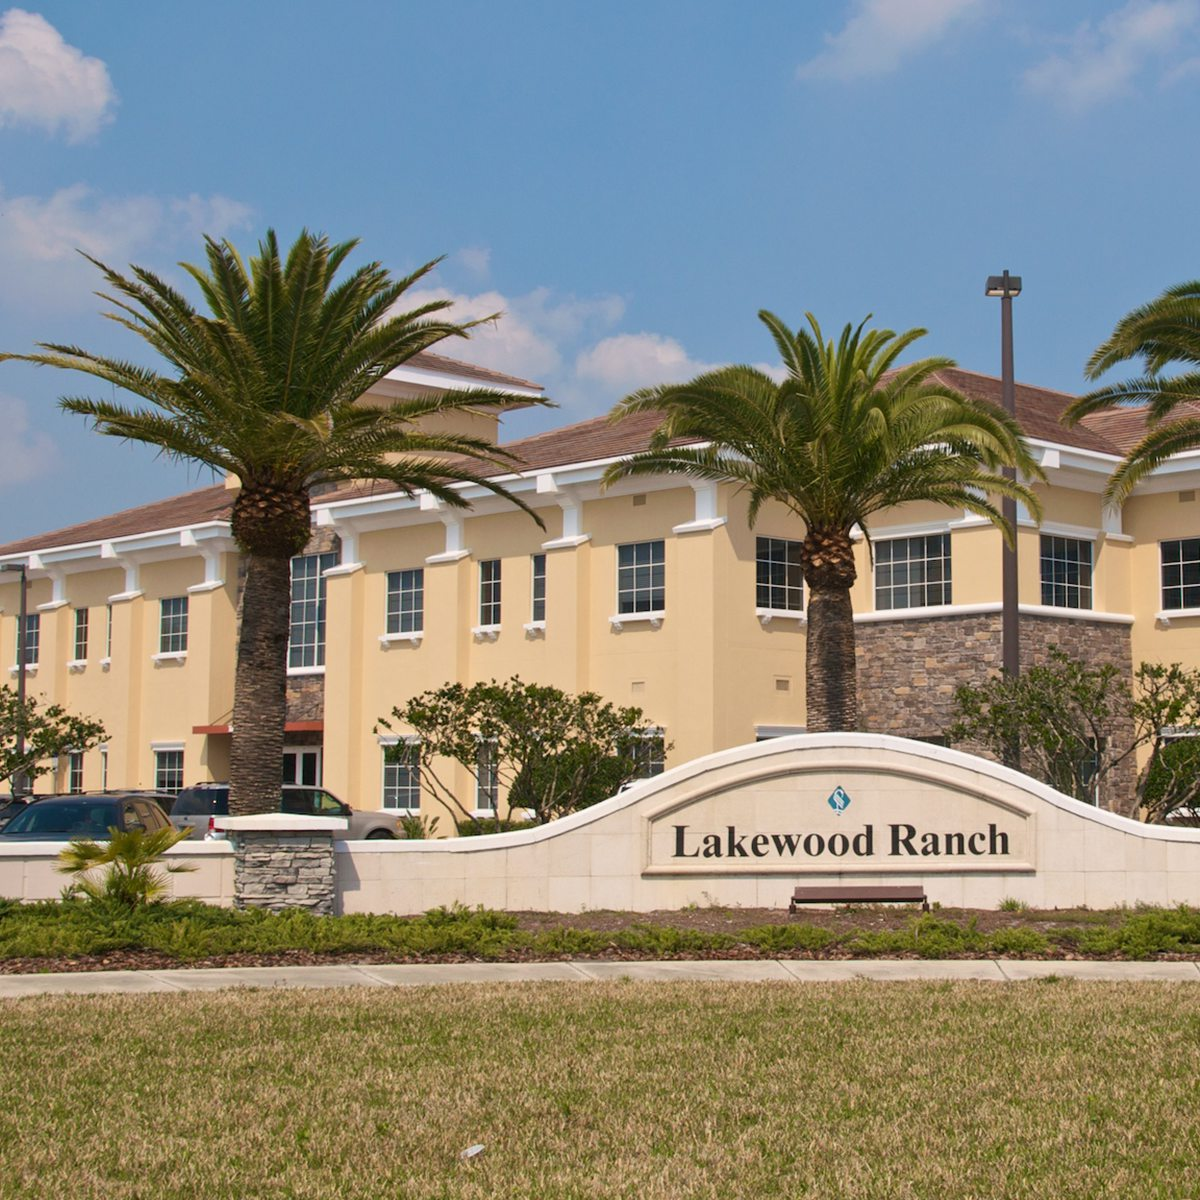 Lakewood Ranch Office Complex